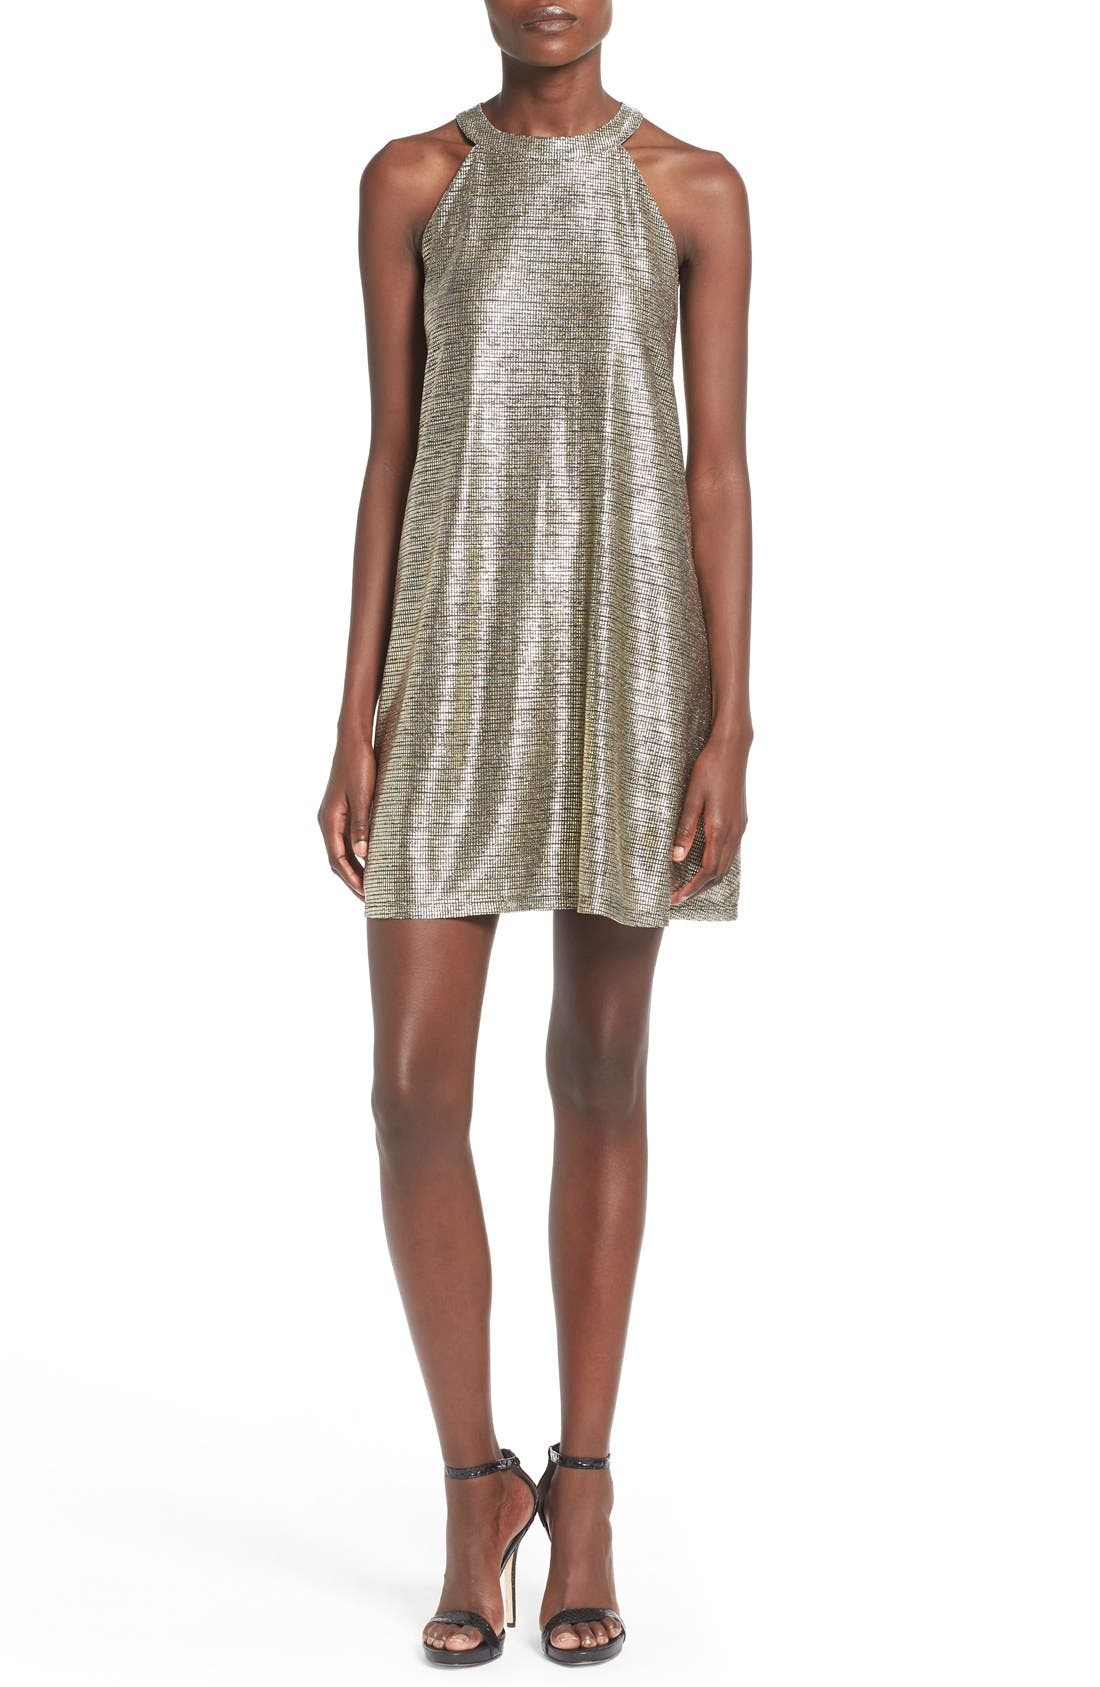 Main Image - One Clothing Metallic Halter Swing Dress